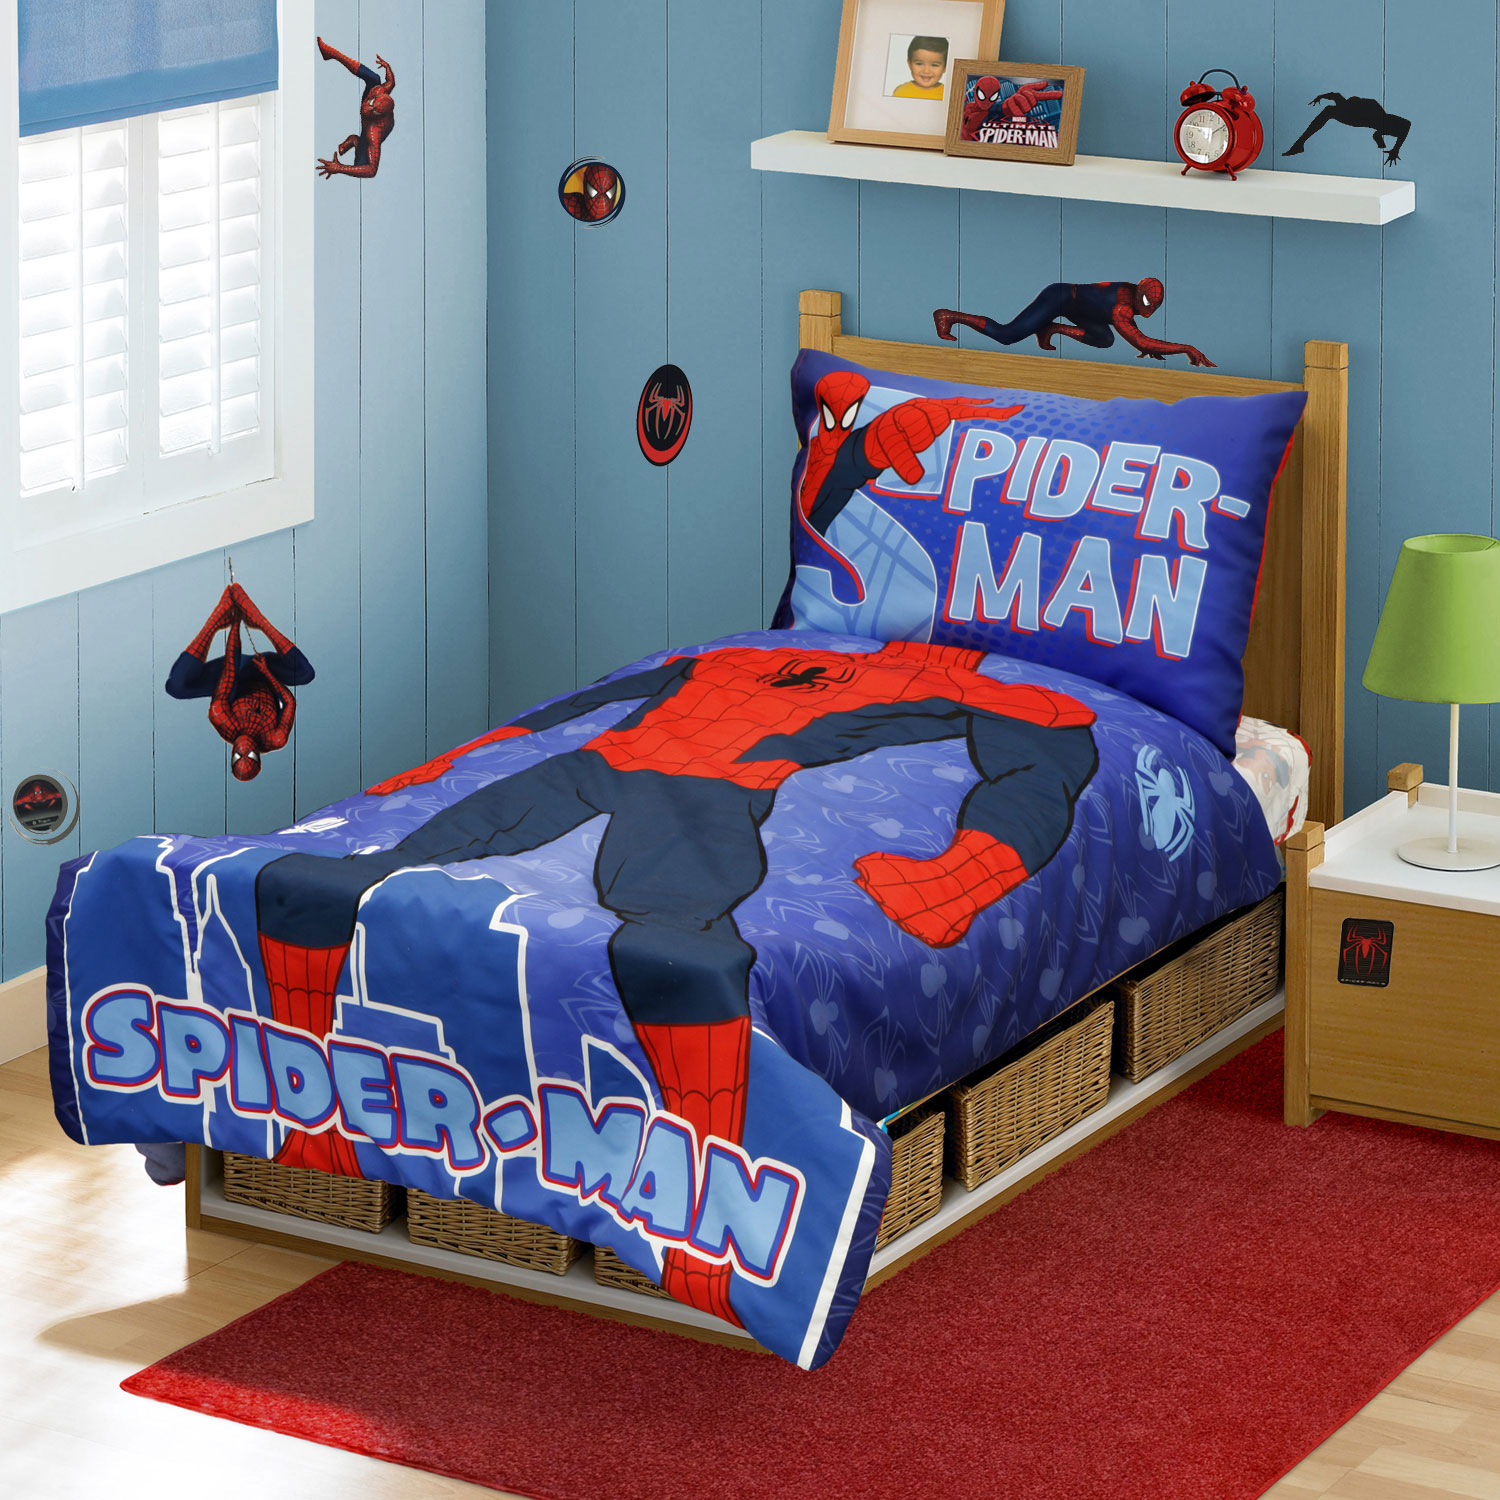 Spider-Man Toddler Bedding and Sticker Set - 28pc Superhero Suit Bedding and Decals